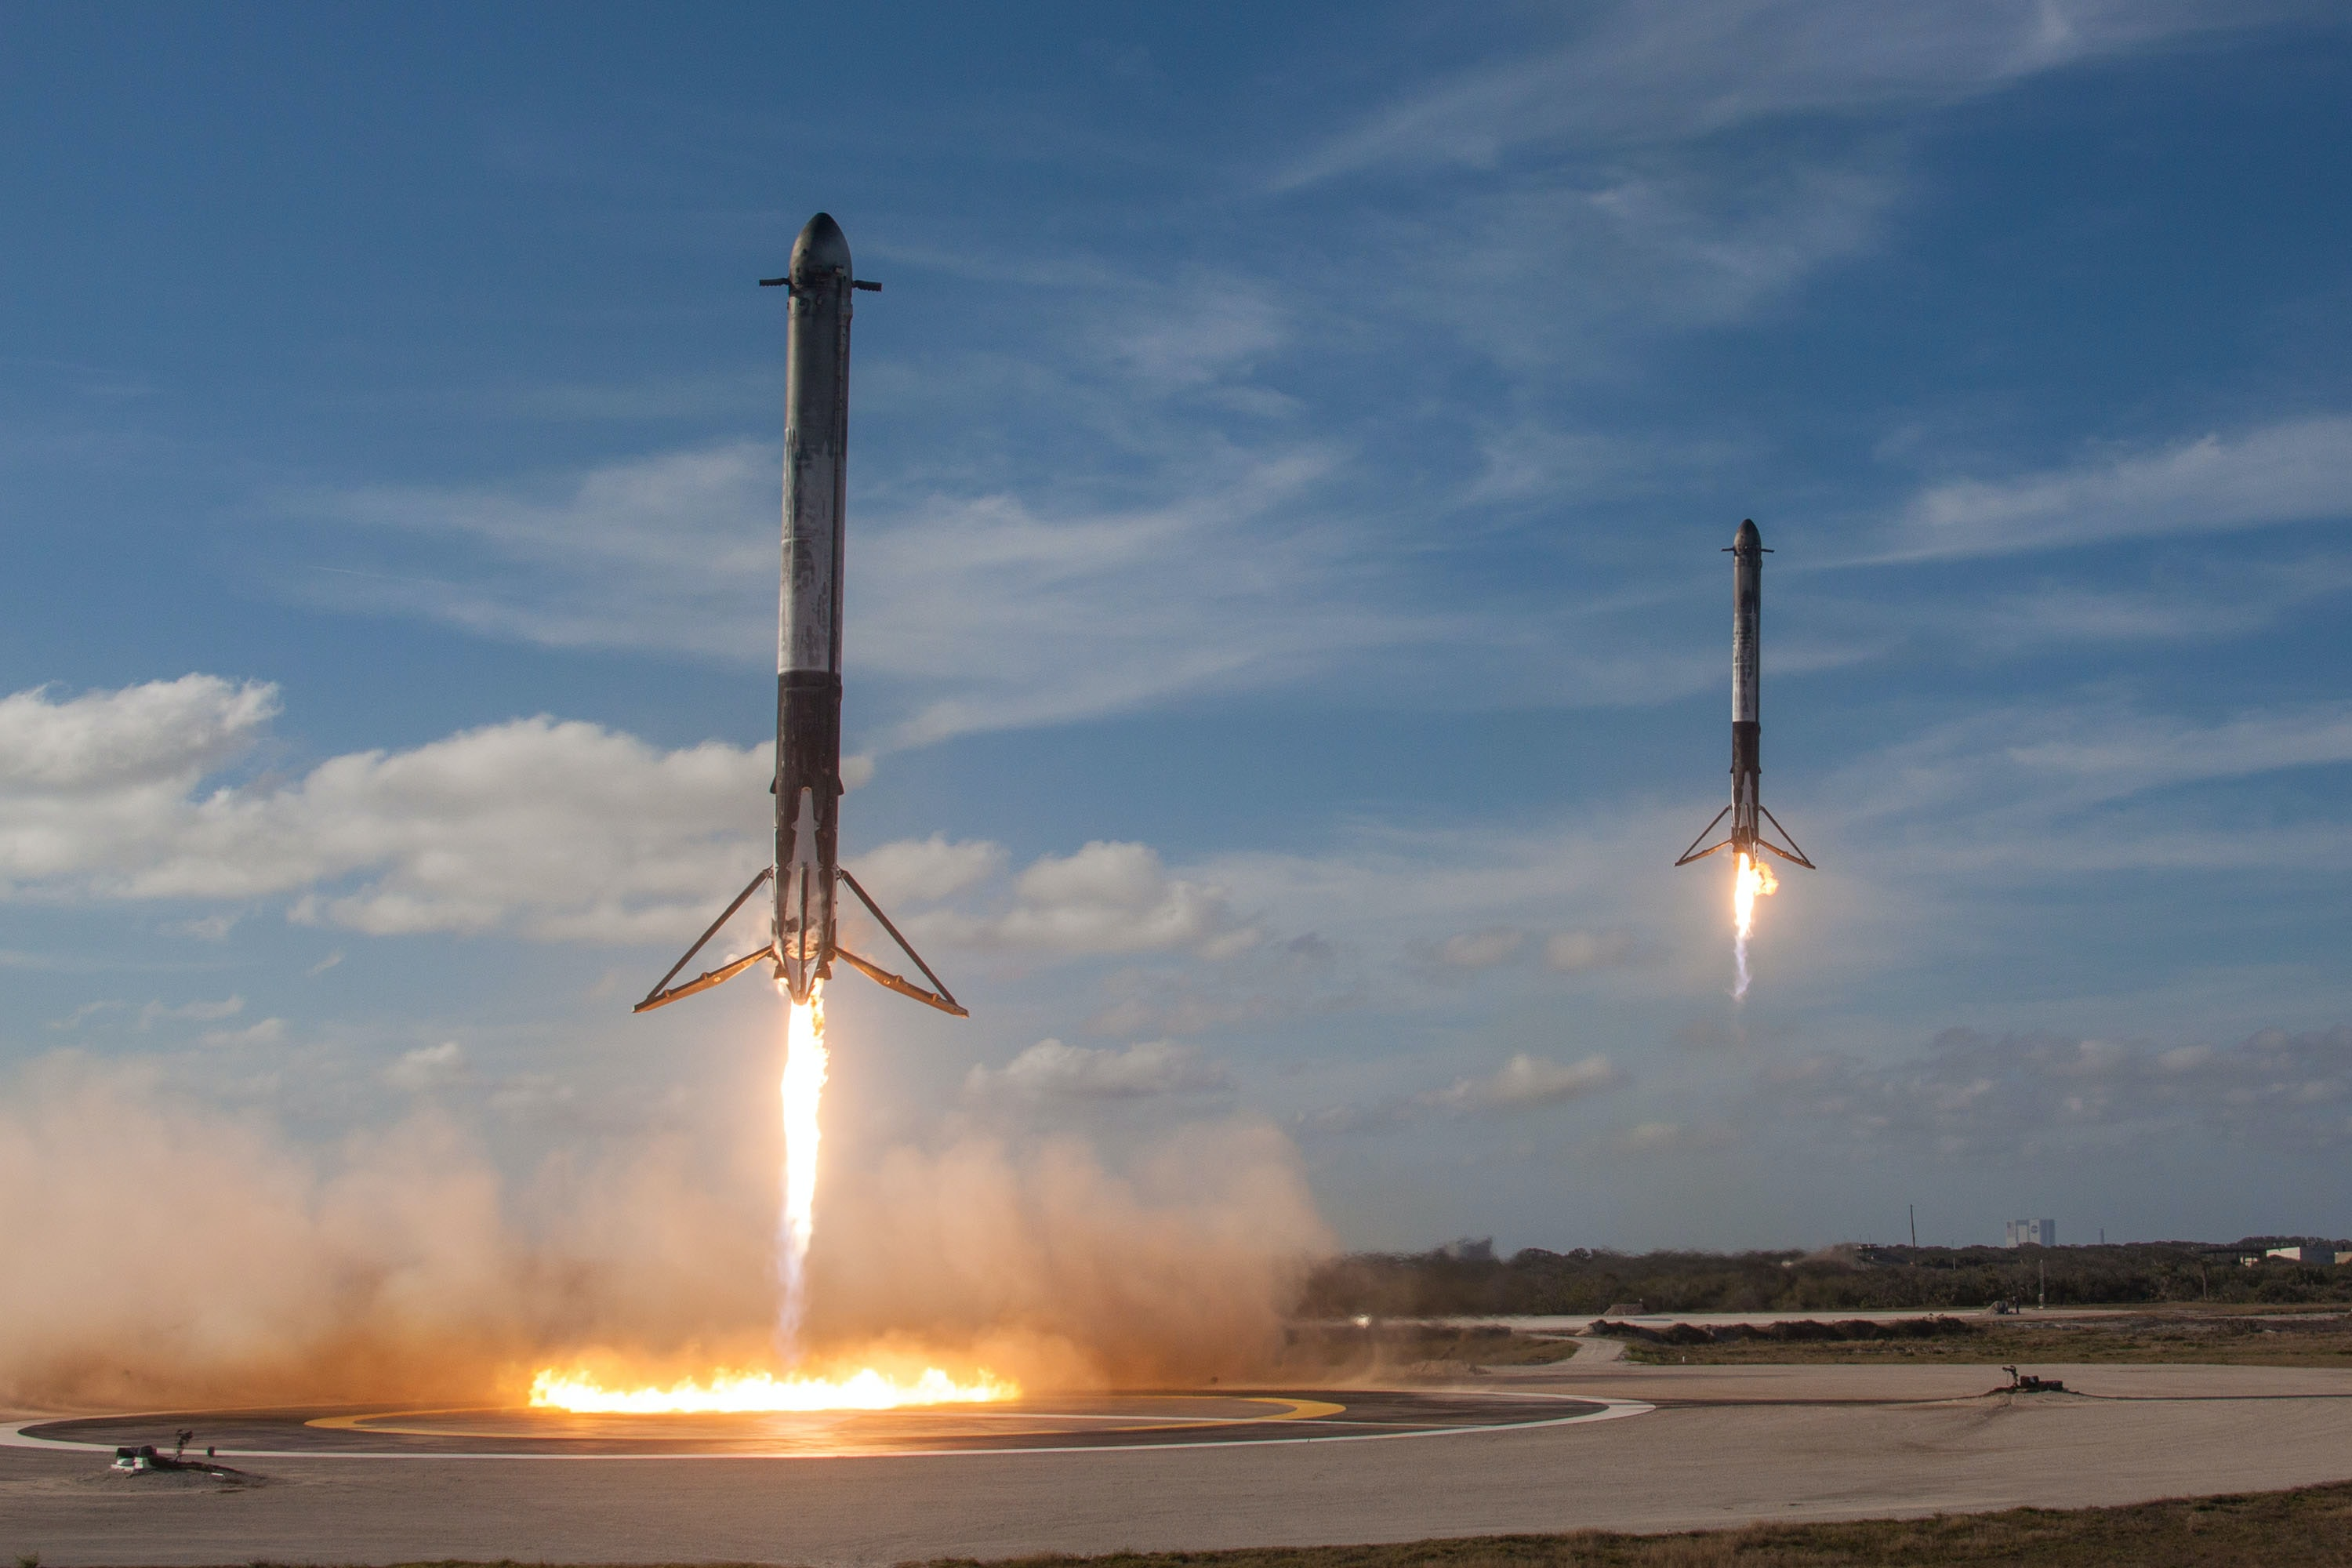 spacex-MEW1f-yu2KI-unsplash